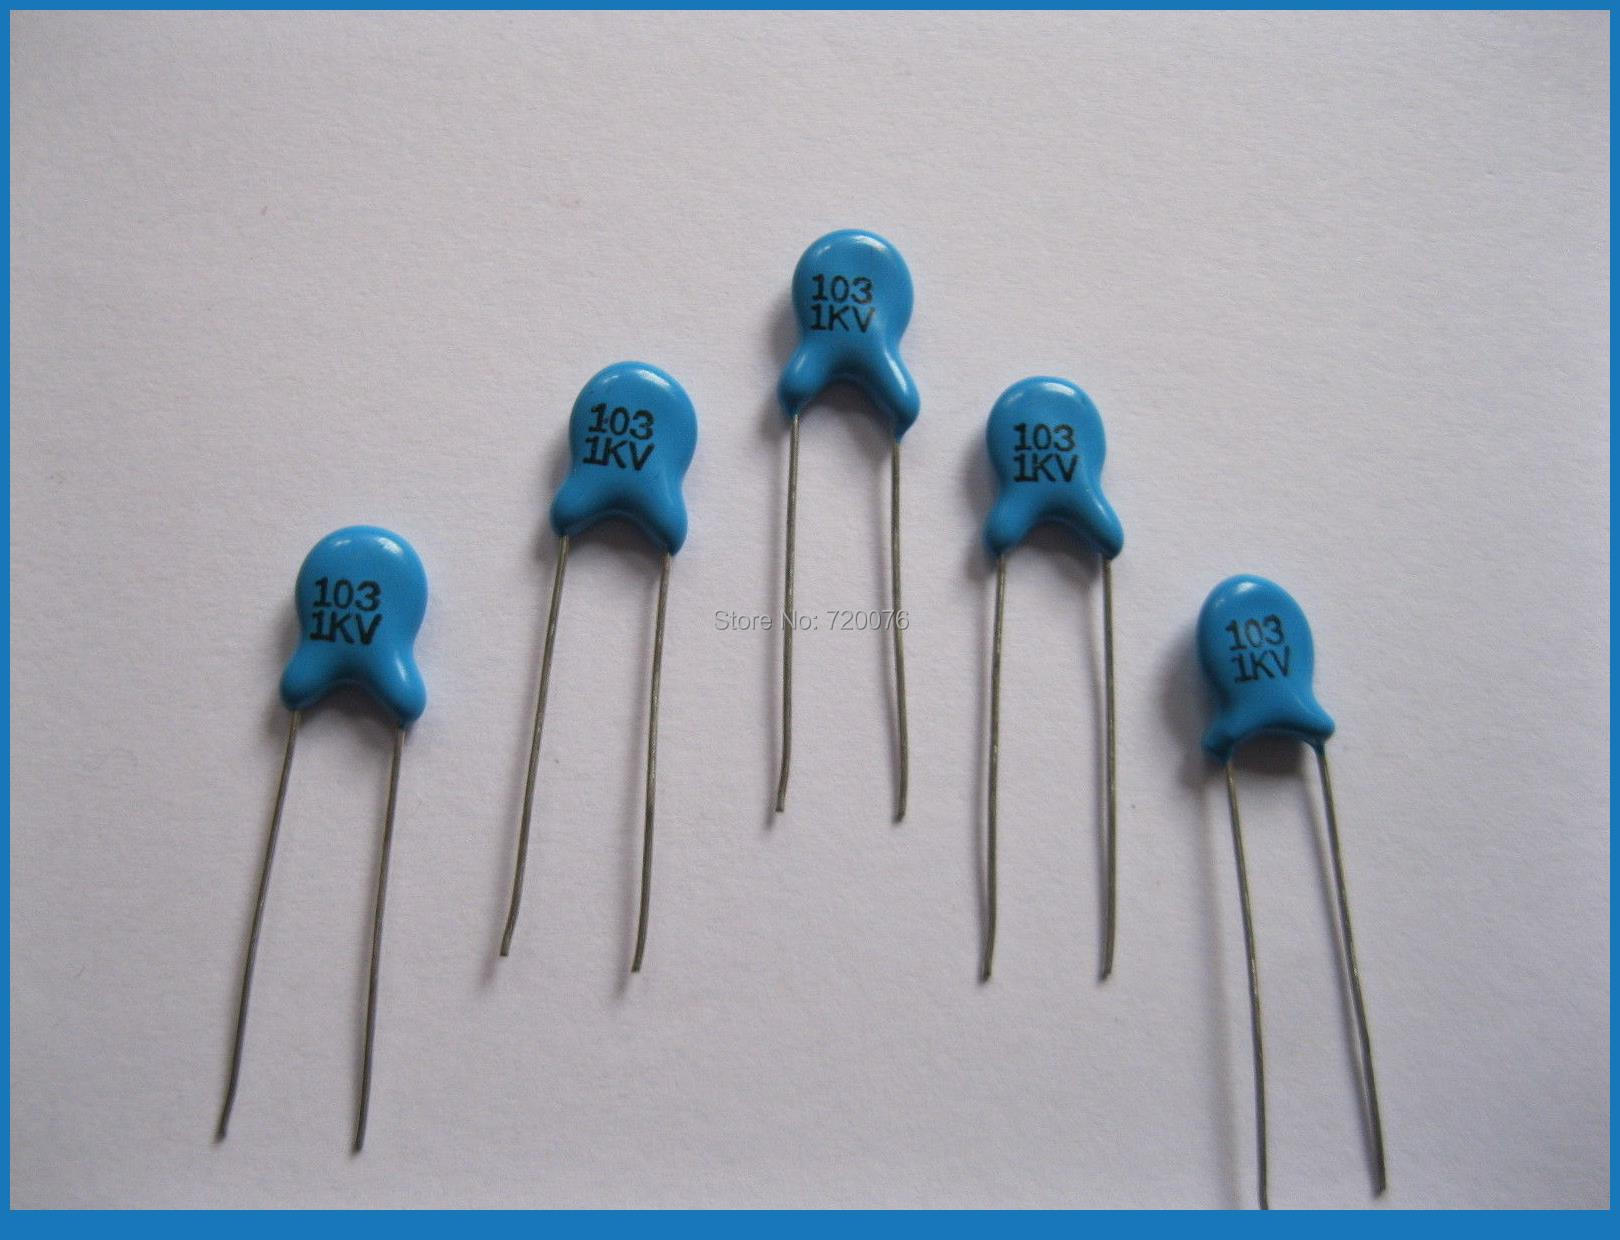 цена на 1000 pcs Ceramic Disc Capacitors 1000V 1KV 103pF 0.01uF